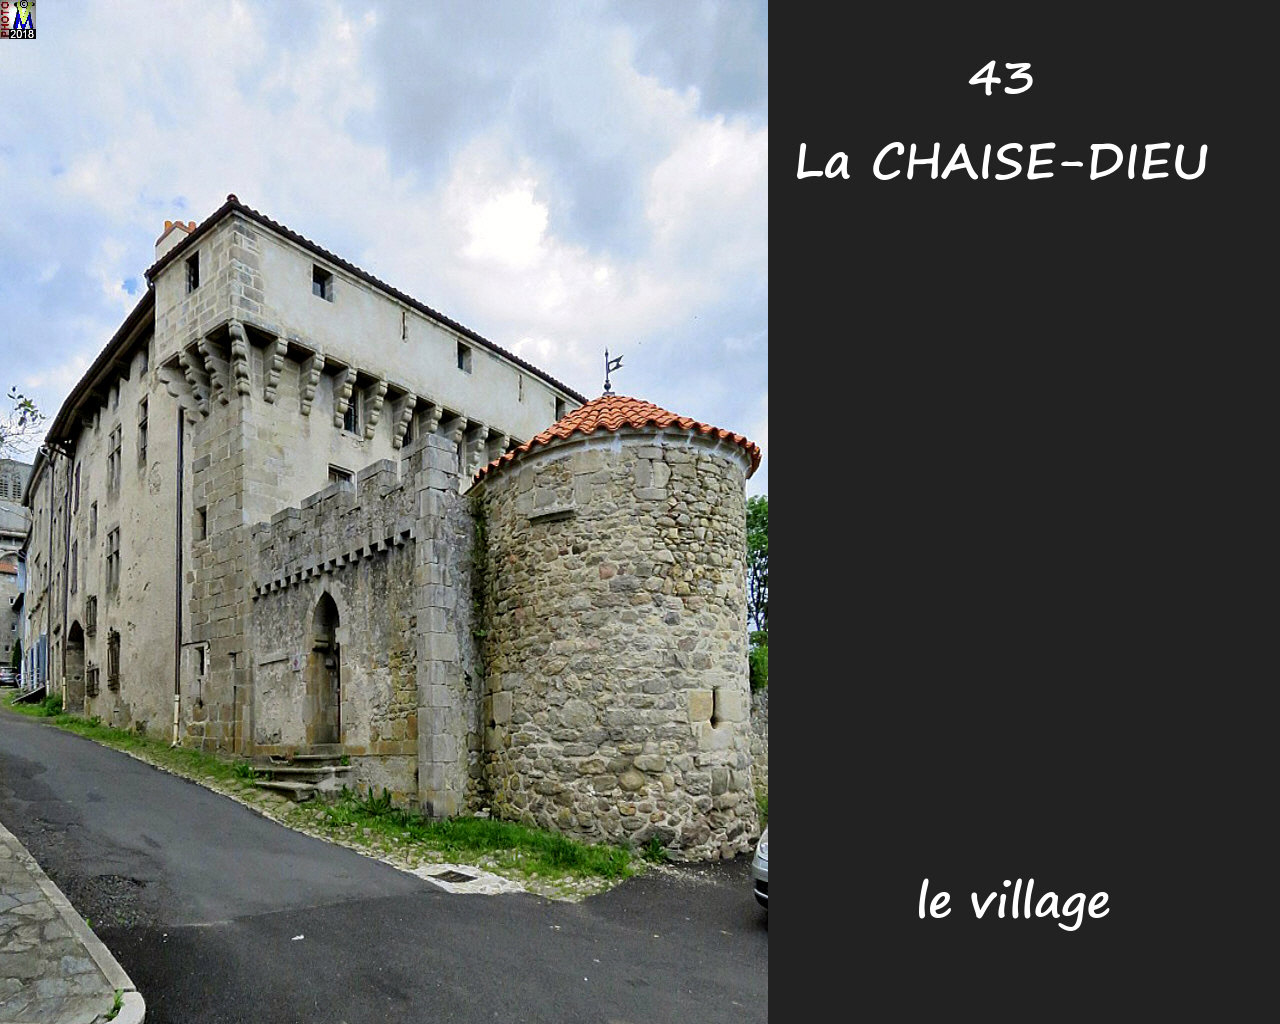 43CHAISE-DIEU_village_132.jpg